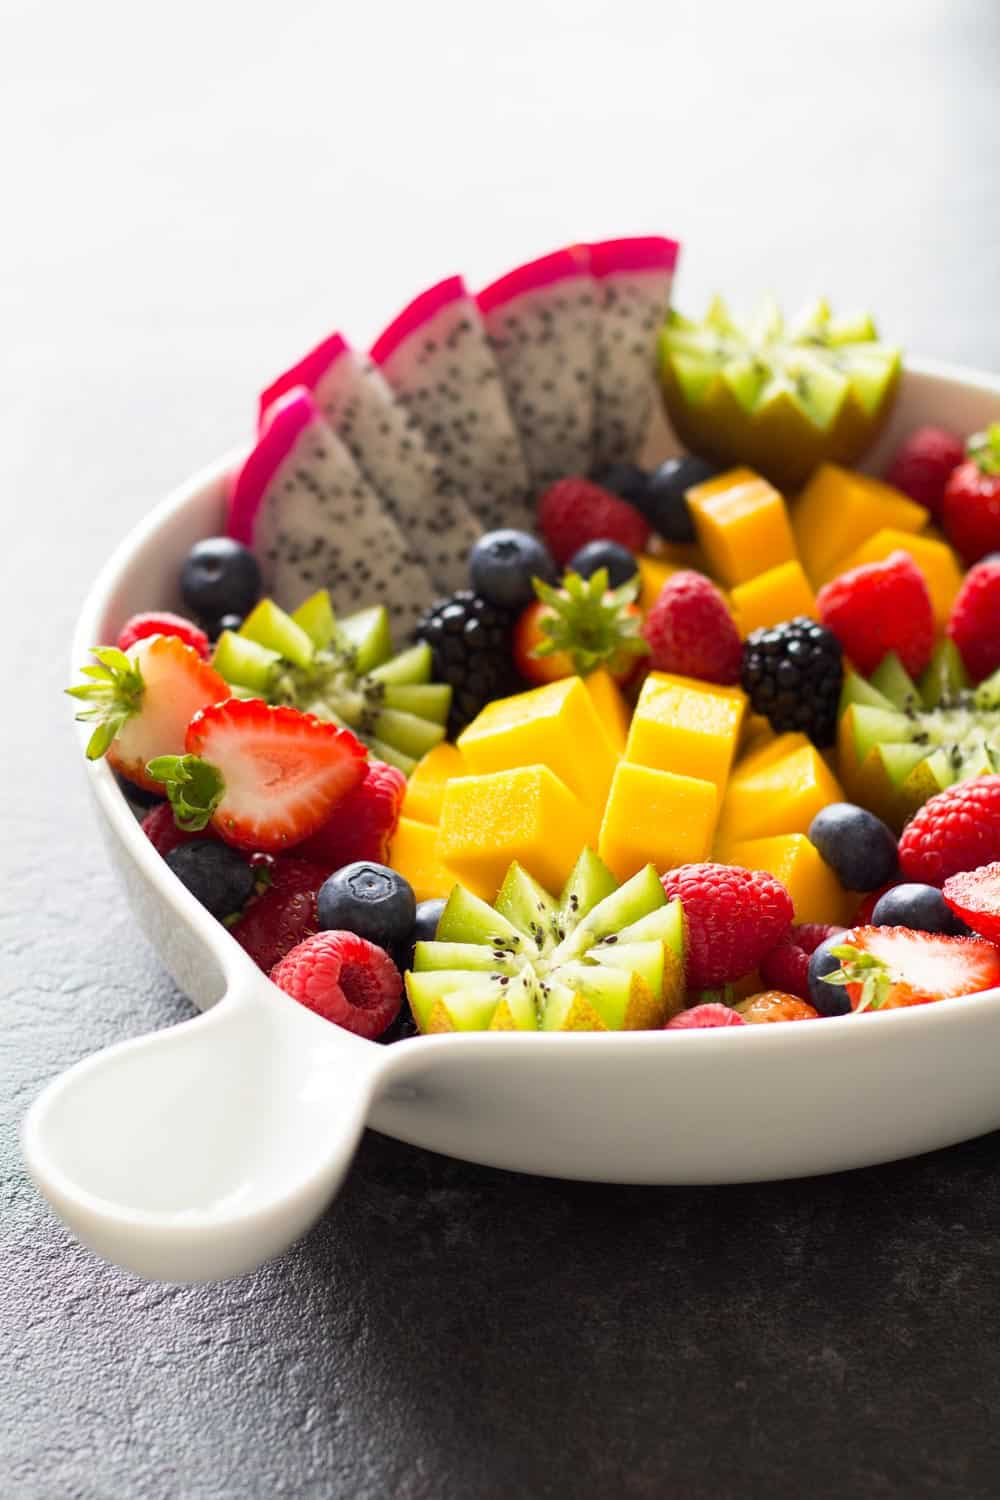 Fruit platter presented in a white bowl with a handle.